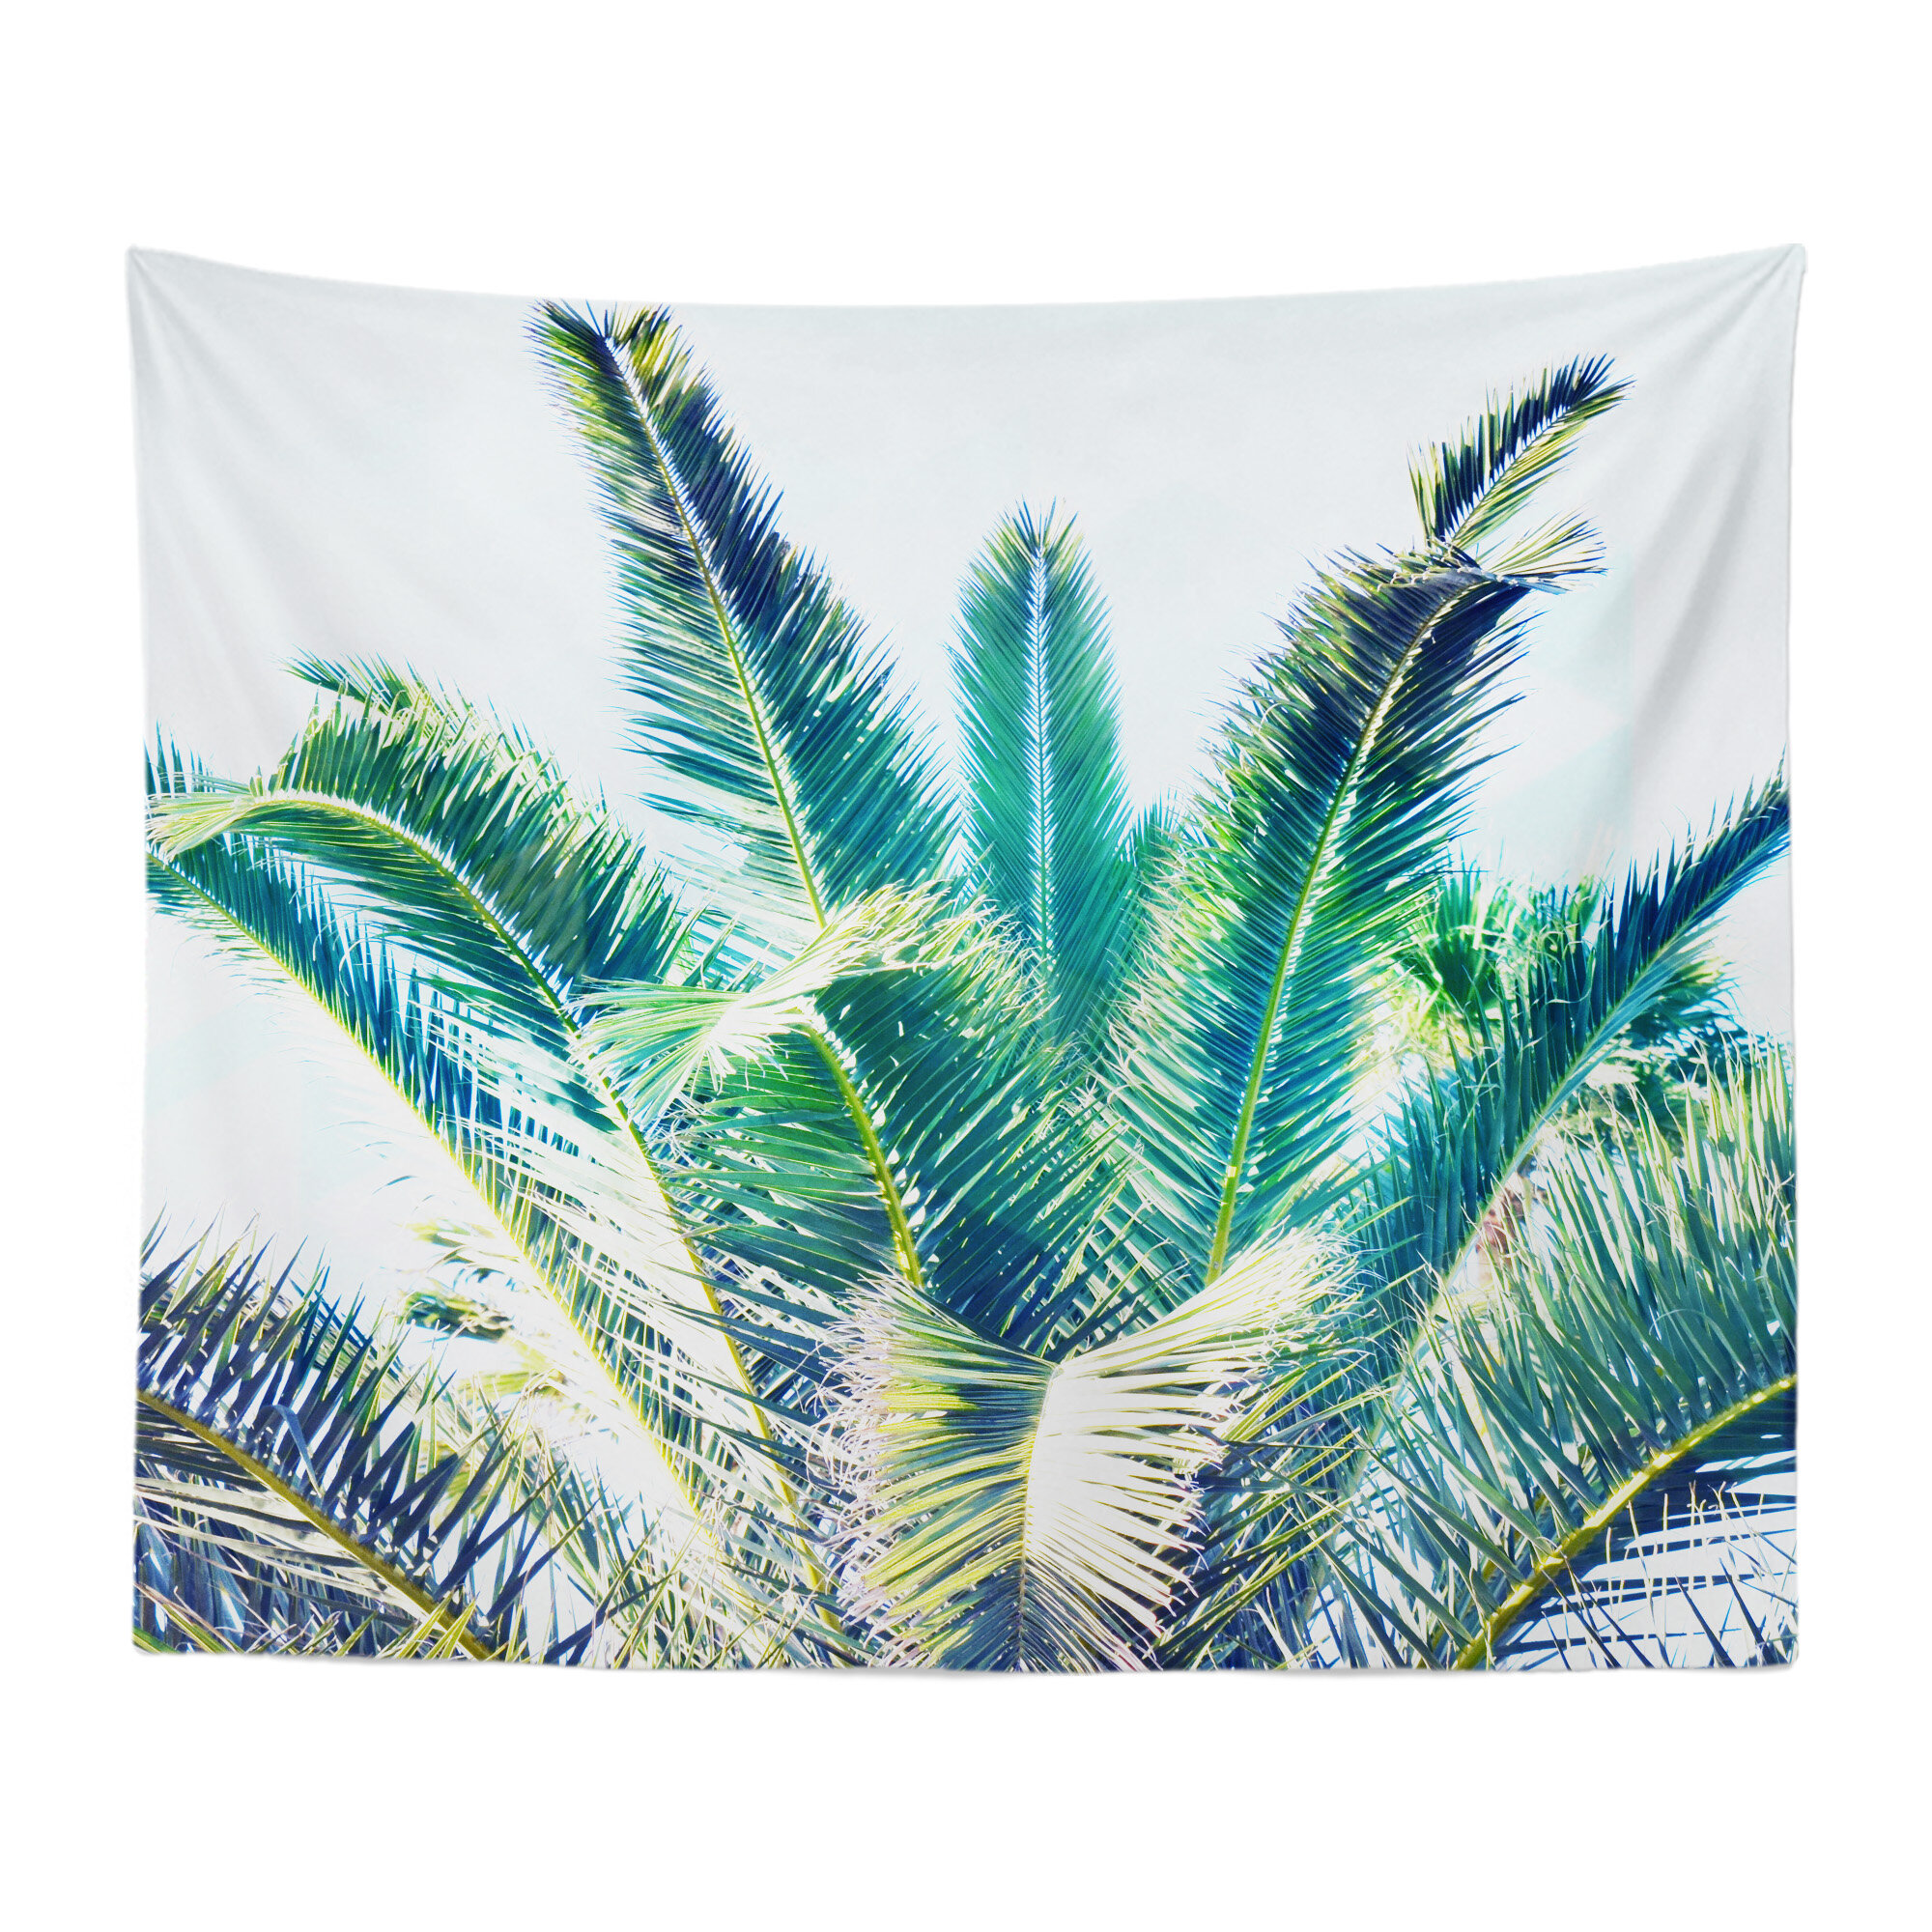 Summer Green Palms Wall Tapestry Beach Surf Decor By Nature City Co